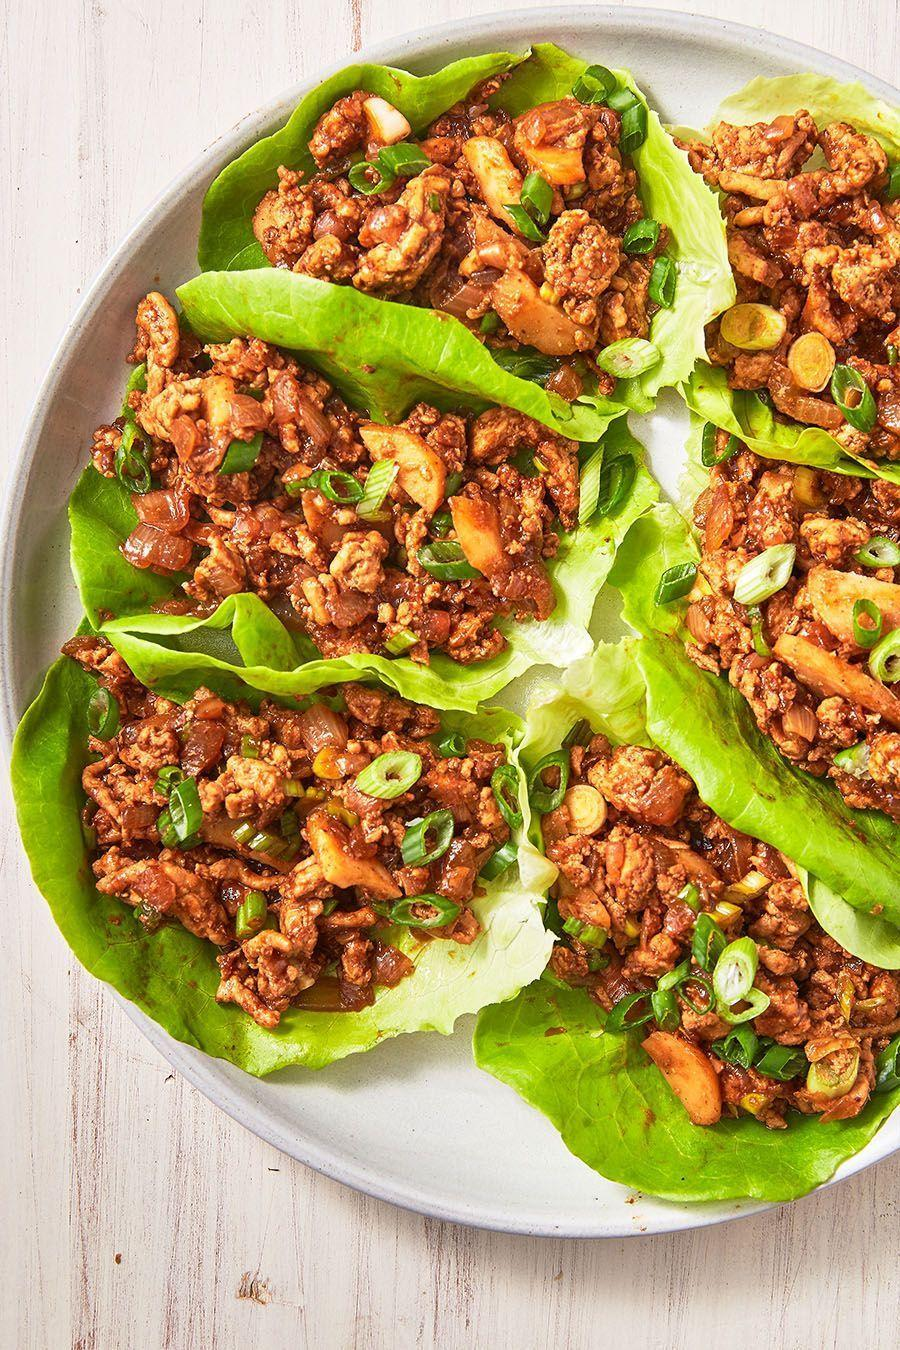 """<p>The sauce for these chicken lettuce wraps is extremely addicting. The sriracha adds a little heat, but you can definitely leave it out if you like (although, we like to add a little extra 😉).</p><p>Get the <a href=""""https://www.delish.com/uk/cooking/recipes/a29891044/asian-lettuce-wraps-recipe/"""" rel=""""nofollow noopener"""" target=""""_blank"""" data-ylk=""""slk:Asian Chicken Lettuce Wraps"""" class=""""link rapid-noclick-resp"""">Asian Chicken Lettuce Wraps</a> recipe.</p>"""